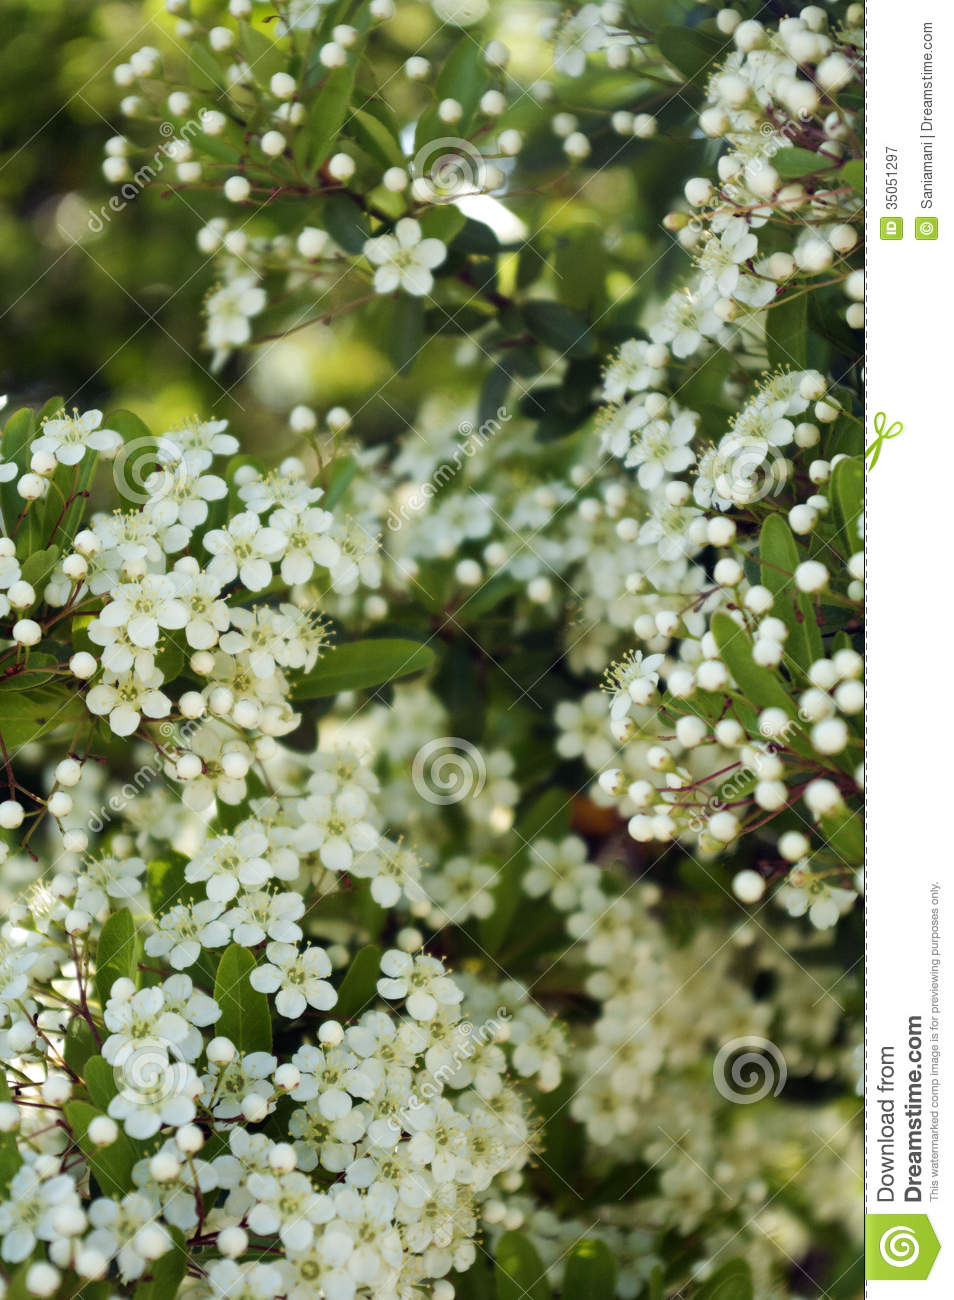 Lovely tree with little white flowers images wedding and flowers little white flowers stock image image of flowers detail 35051297 mightylinksfo Image collections